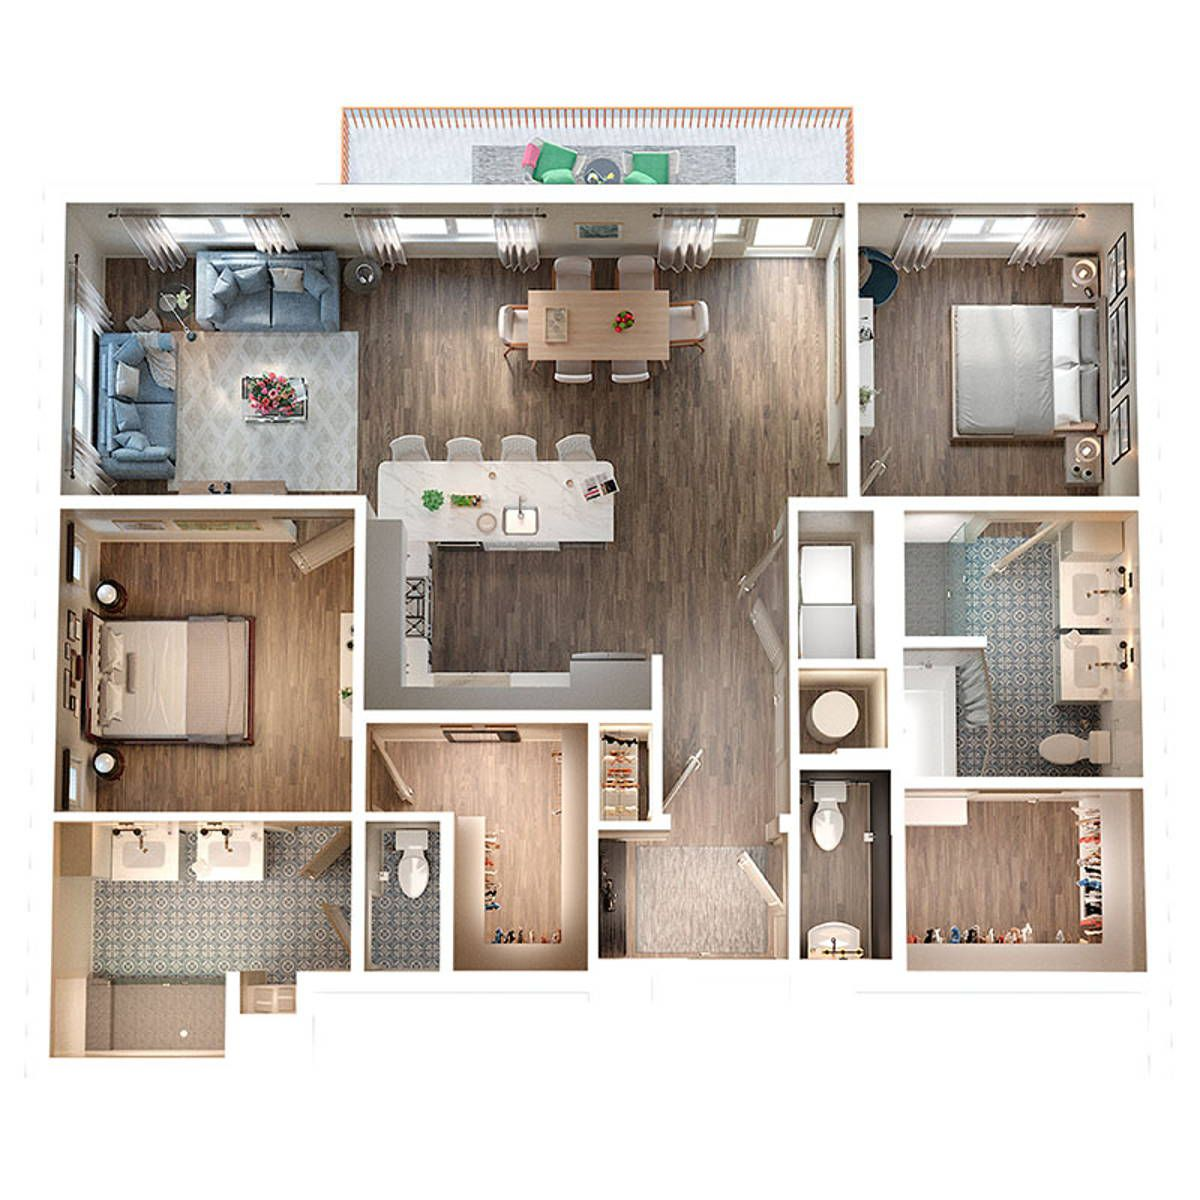 A two-bedroom floorplan for a condo.